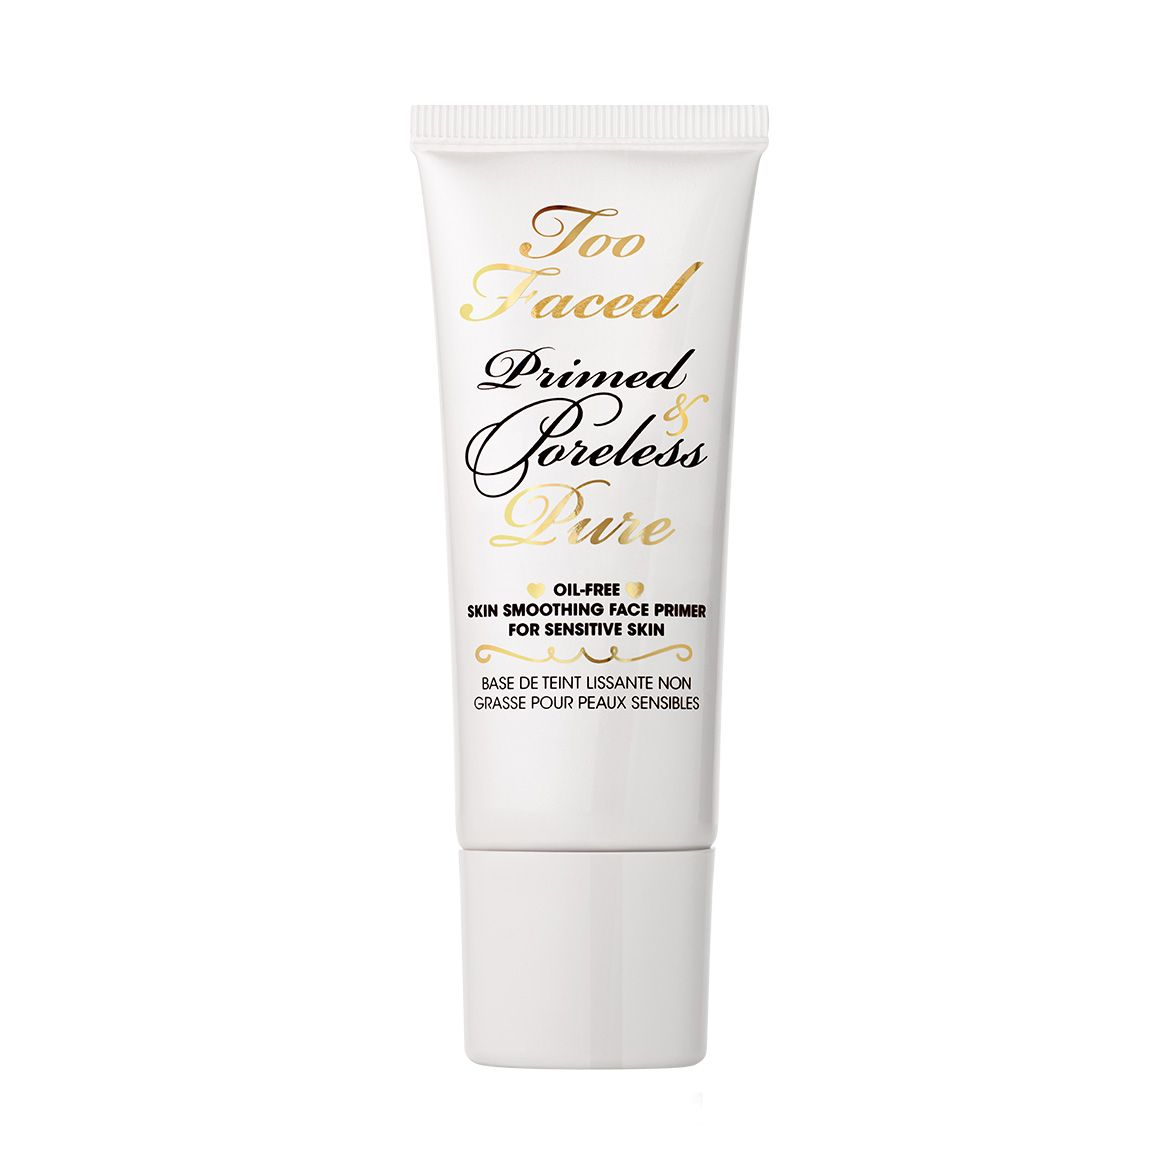 Primed & Poreless Skin Smoothing Face Primer by Too Faced #4